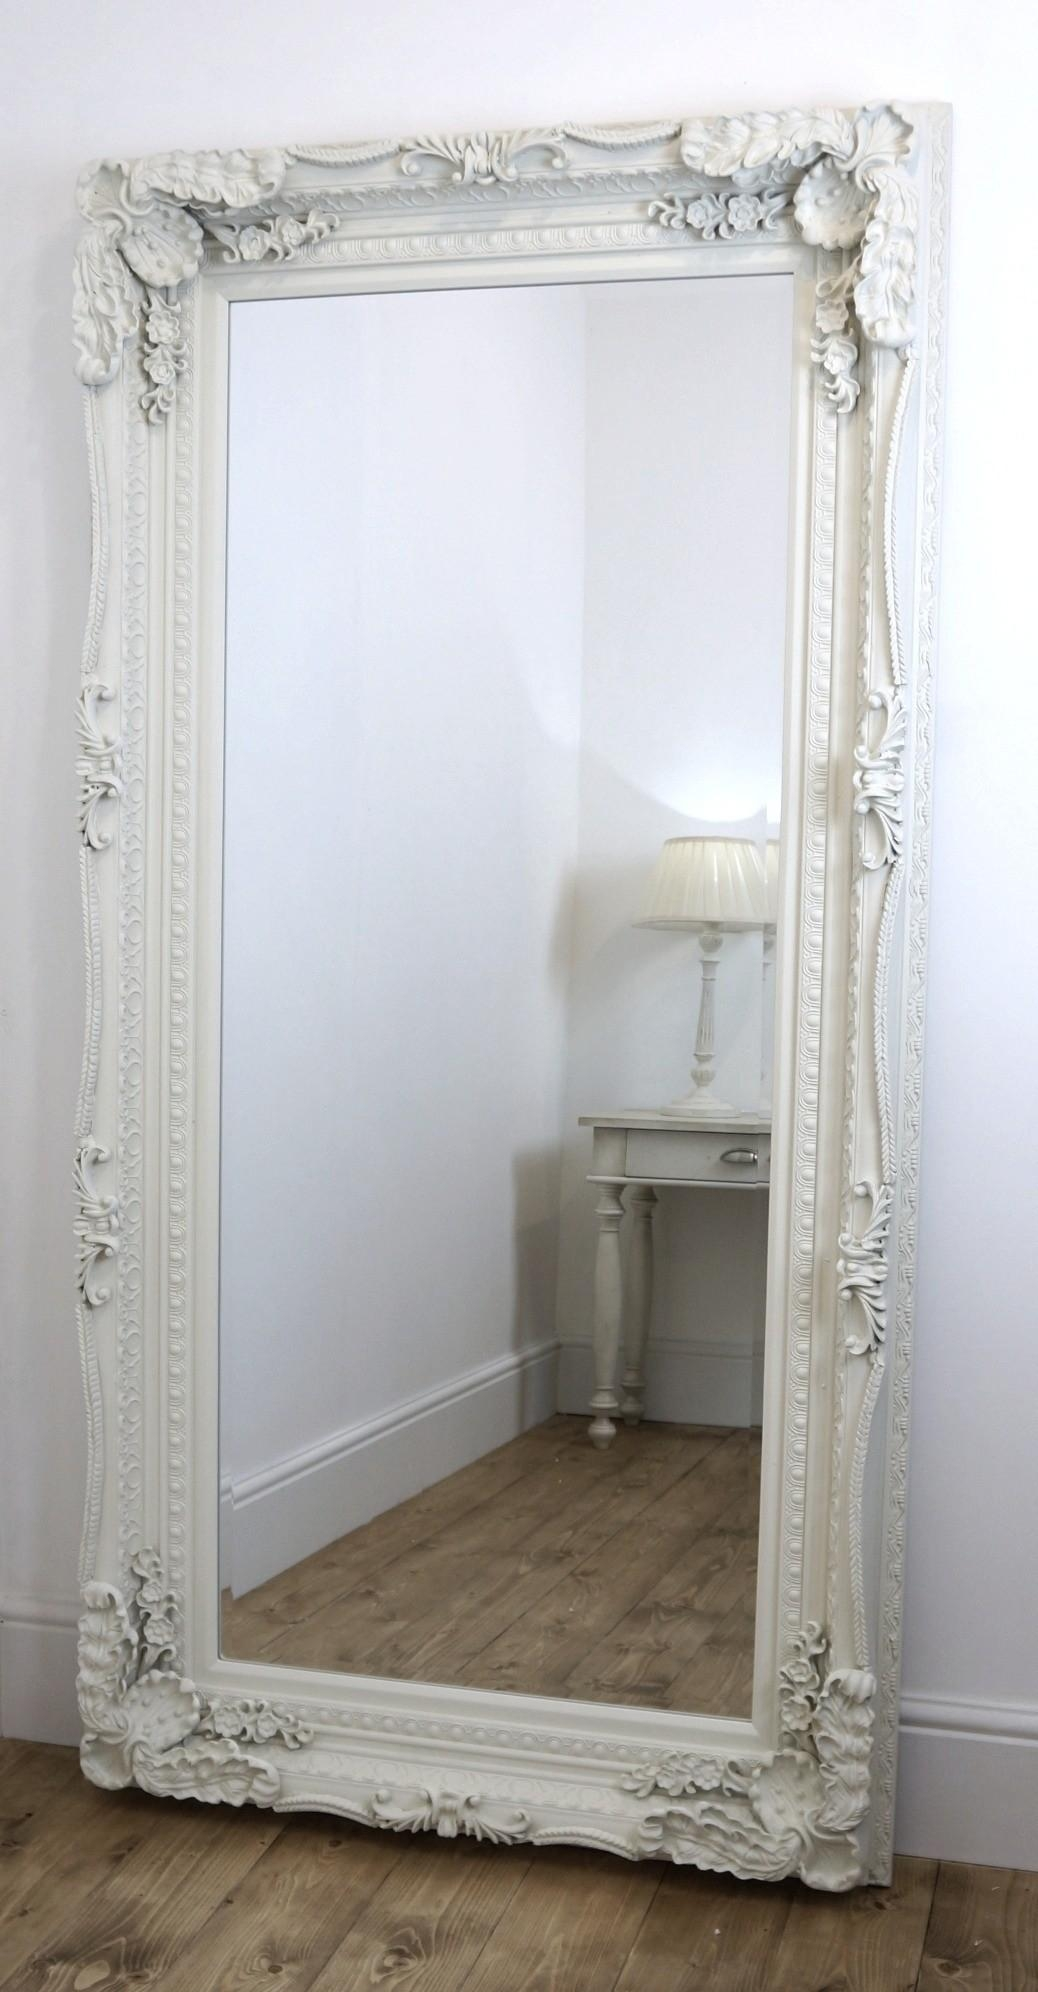 Furniture: Luxury Leaner Mirror For Home Accessories Ideas — Mtyp With Regard To White Baroque Floor Mirror (Image 16 of 20)